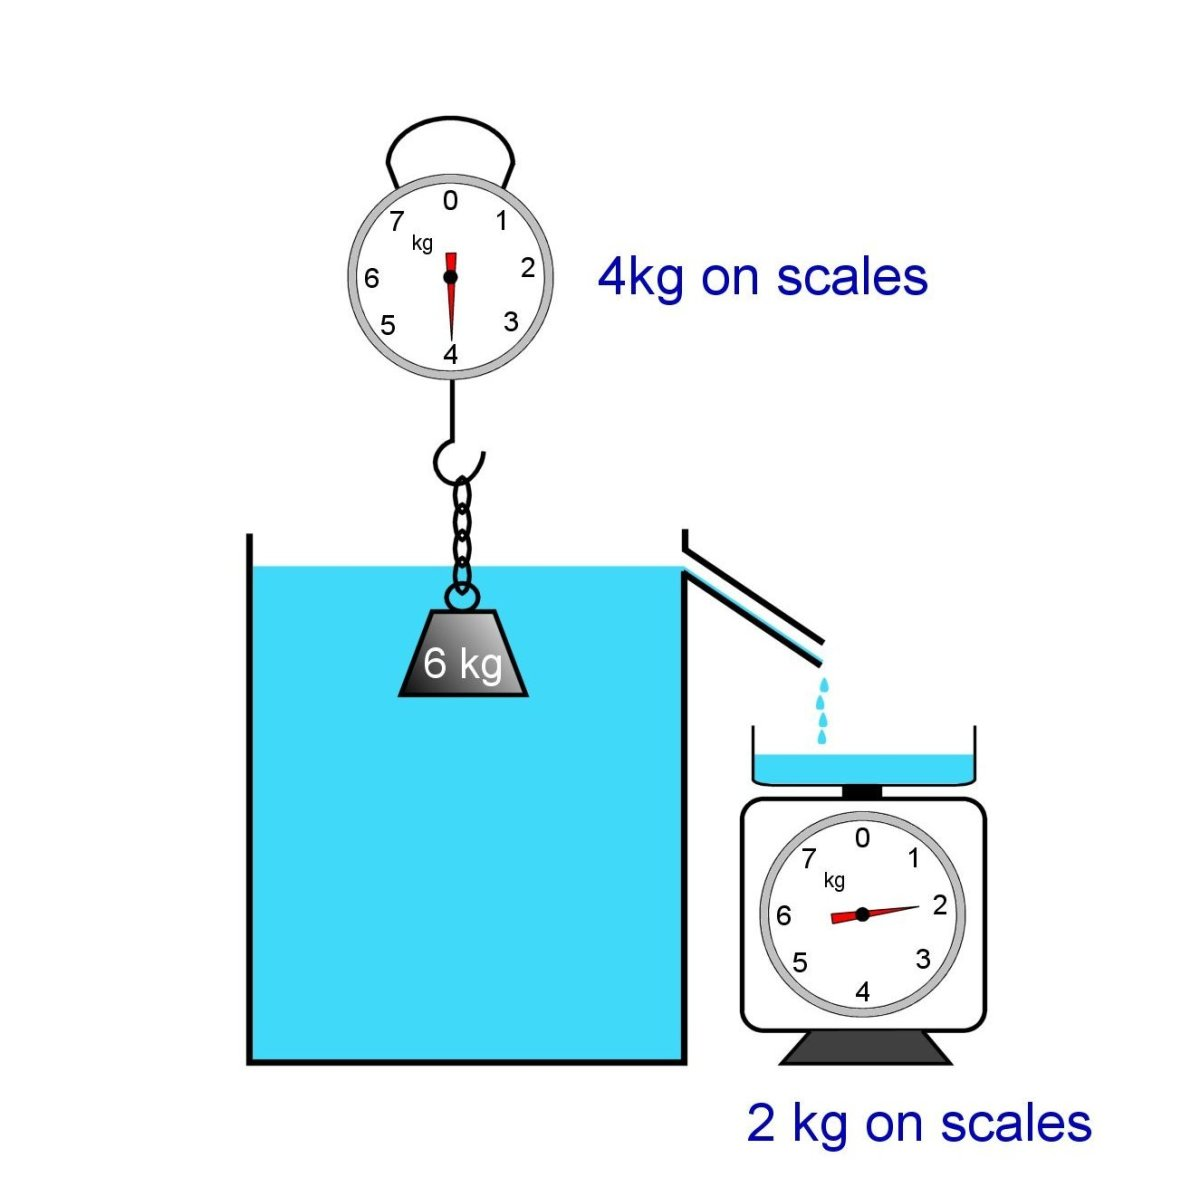 Demonstrating the Archimede's principle. Weight submerged in water. Displaced water is weighed.